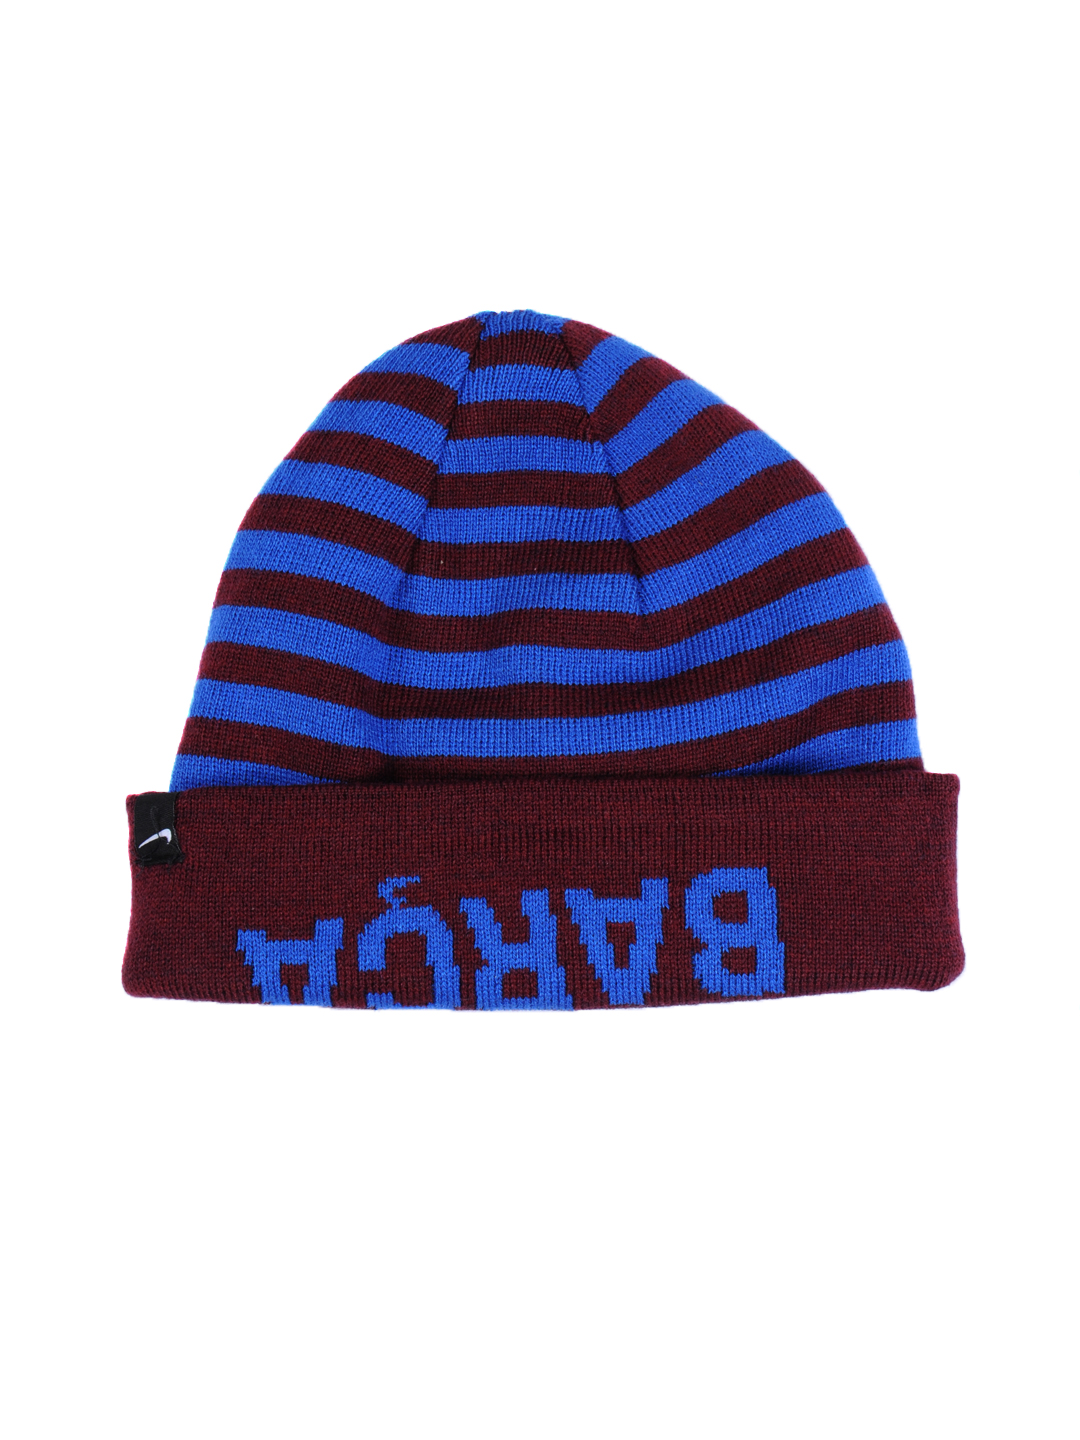 Nike Unisex Blue & Brown Striped Cap